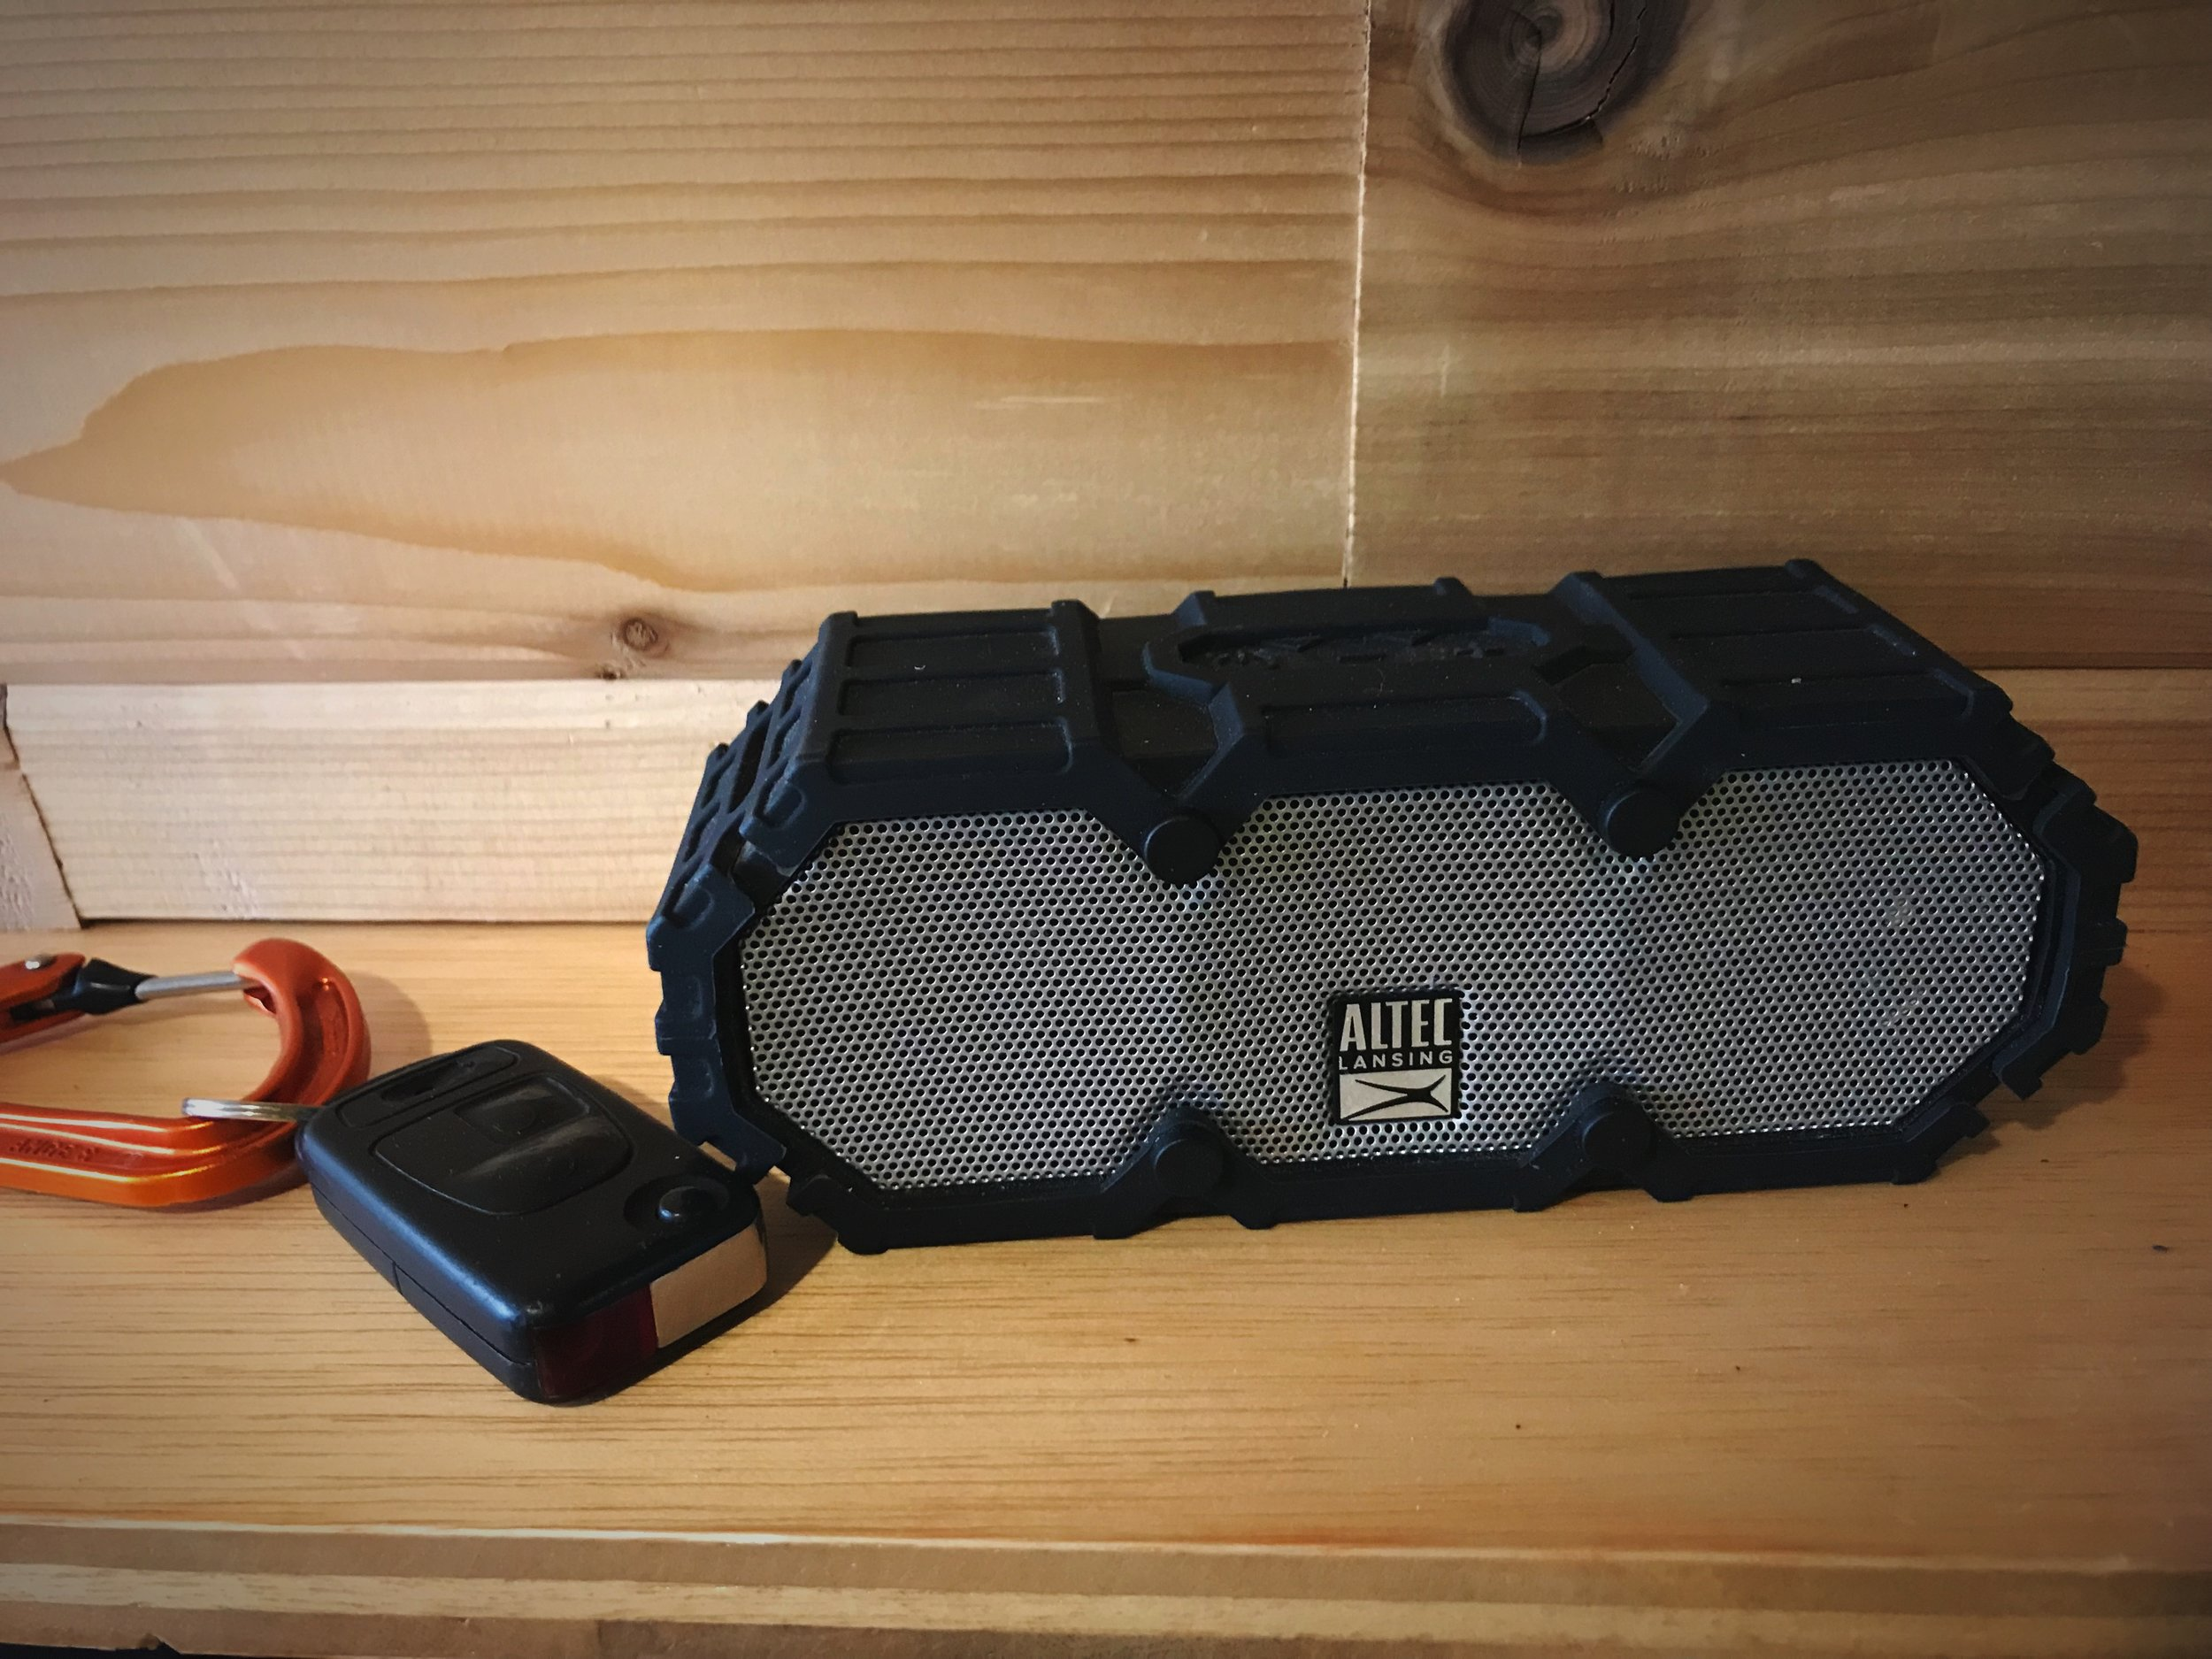 We like this compact little Bluetooth speaker. We use it all the time for listening to music or watching movies.